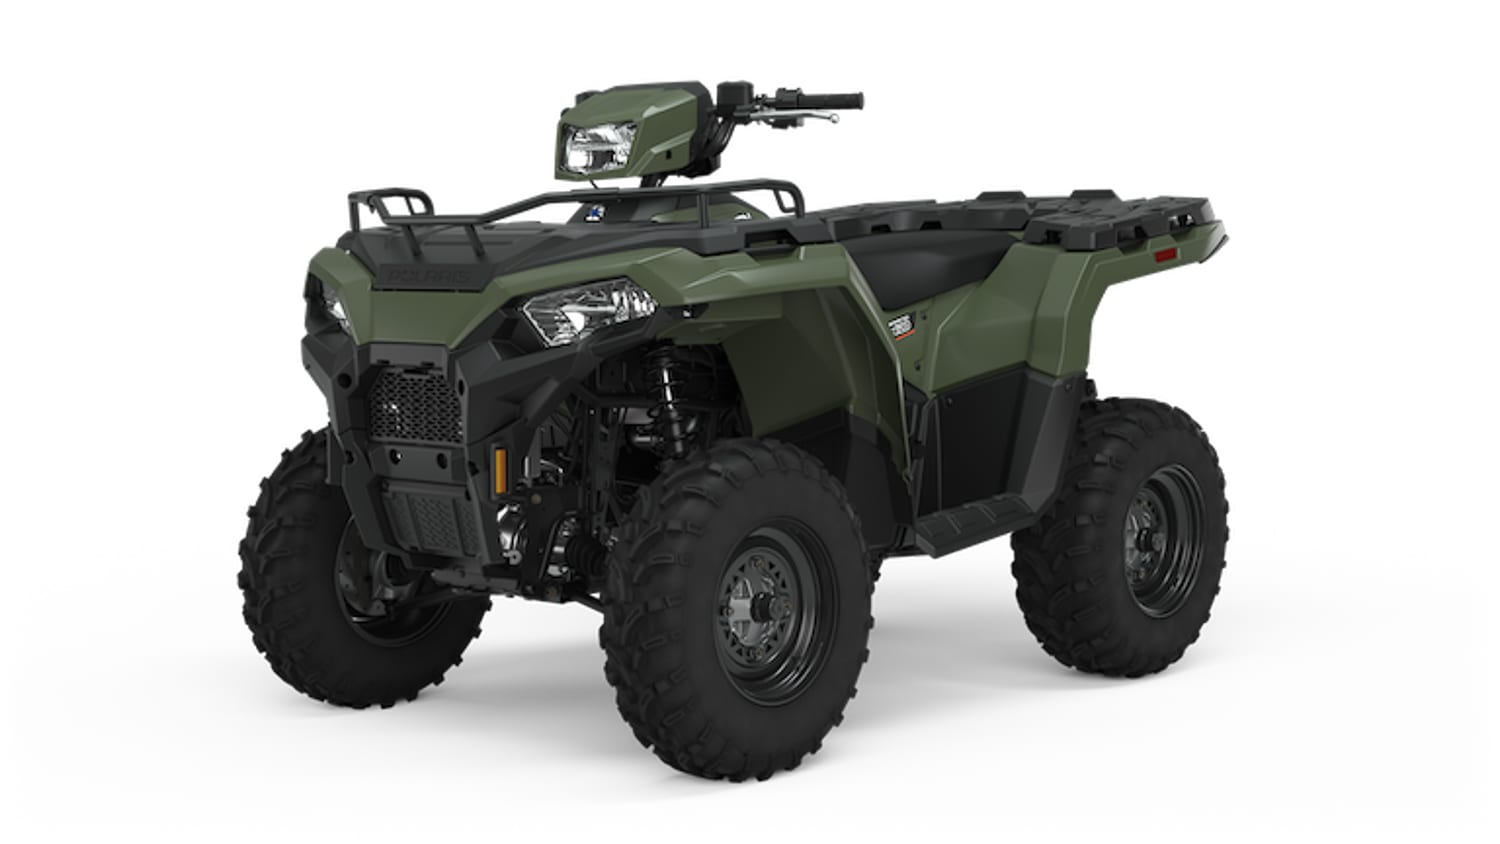 2021 Sportsman 450 H.O. and 570